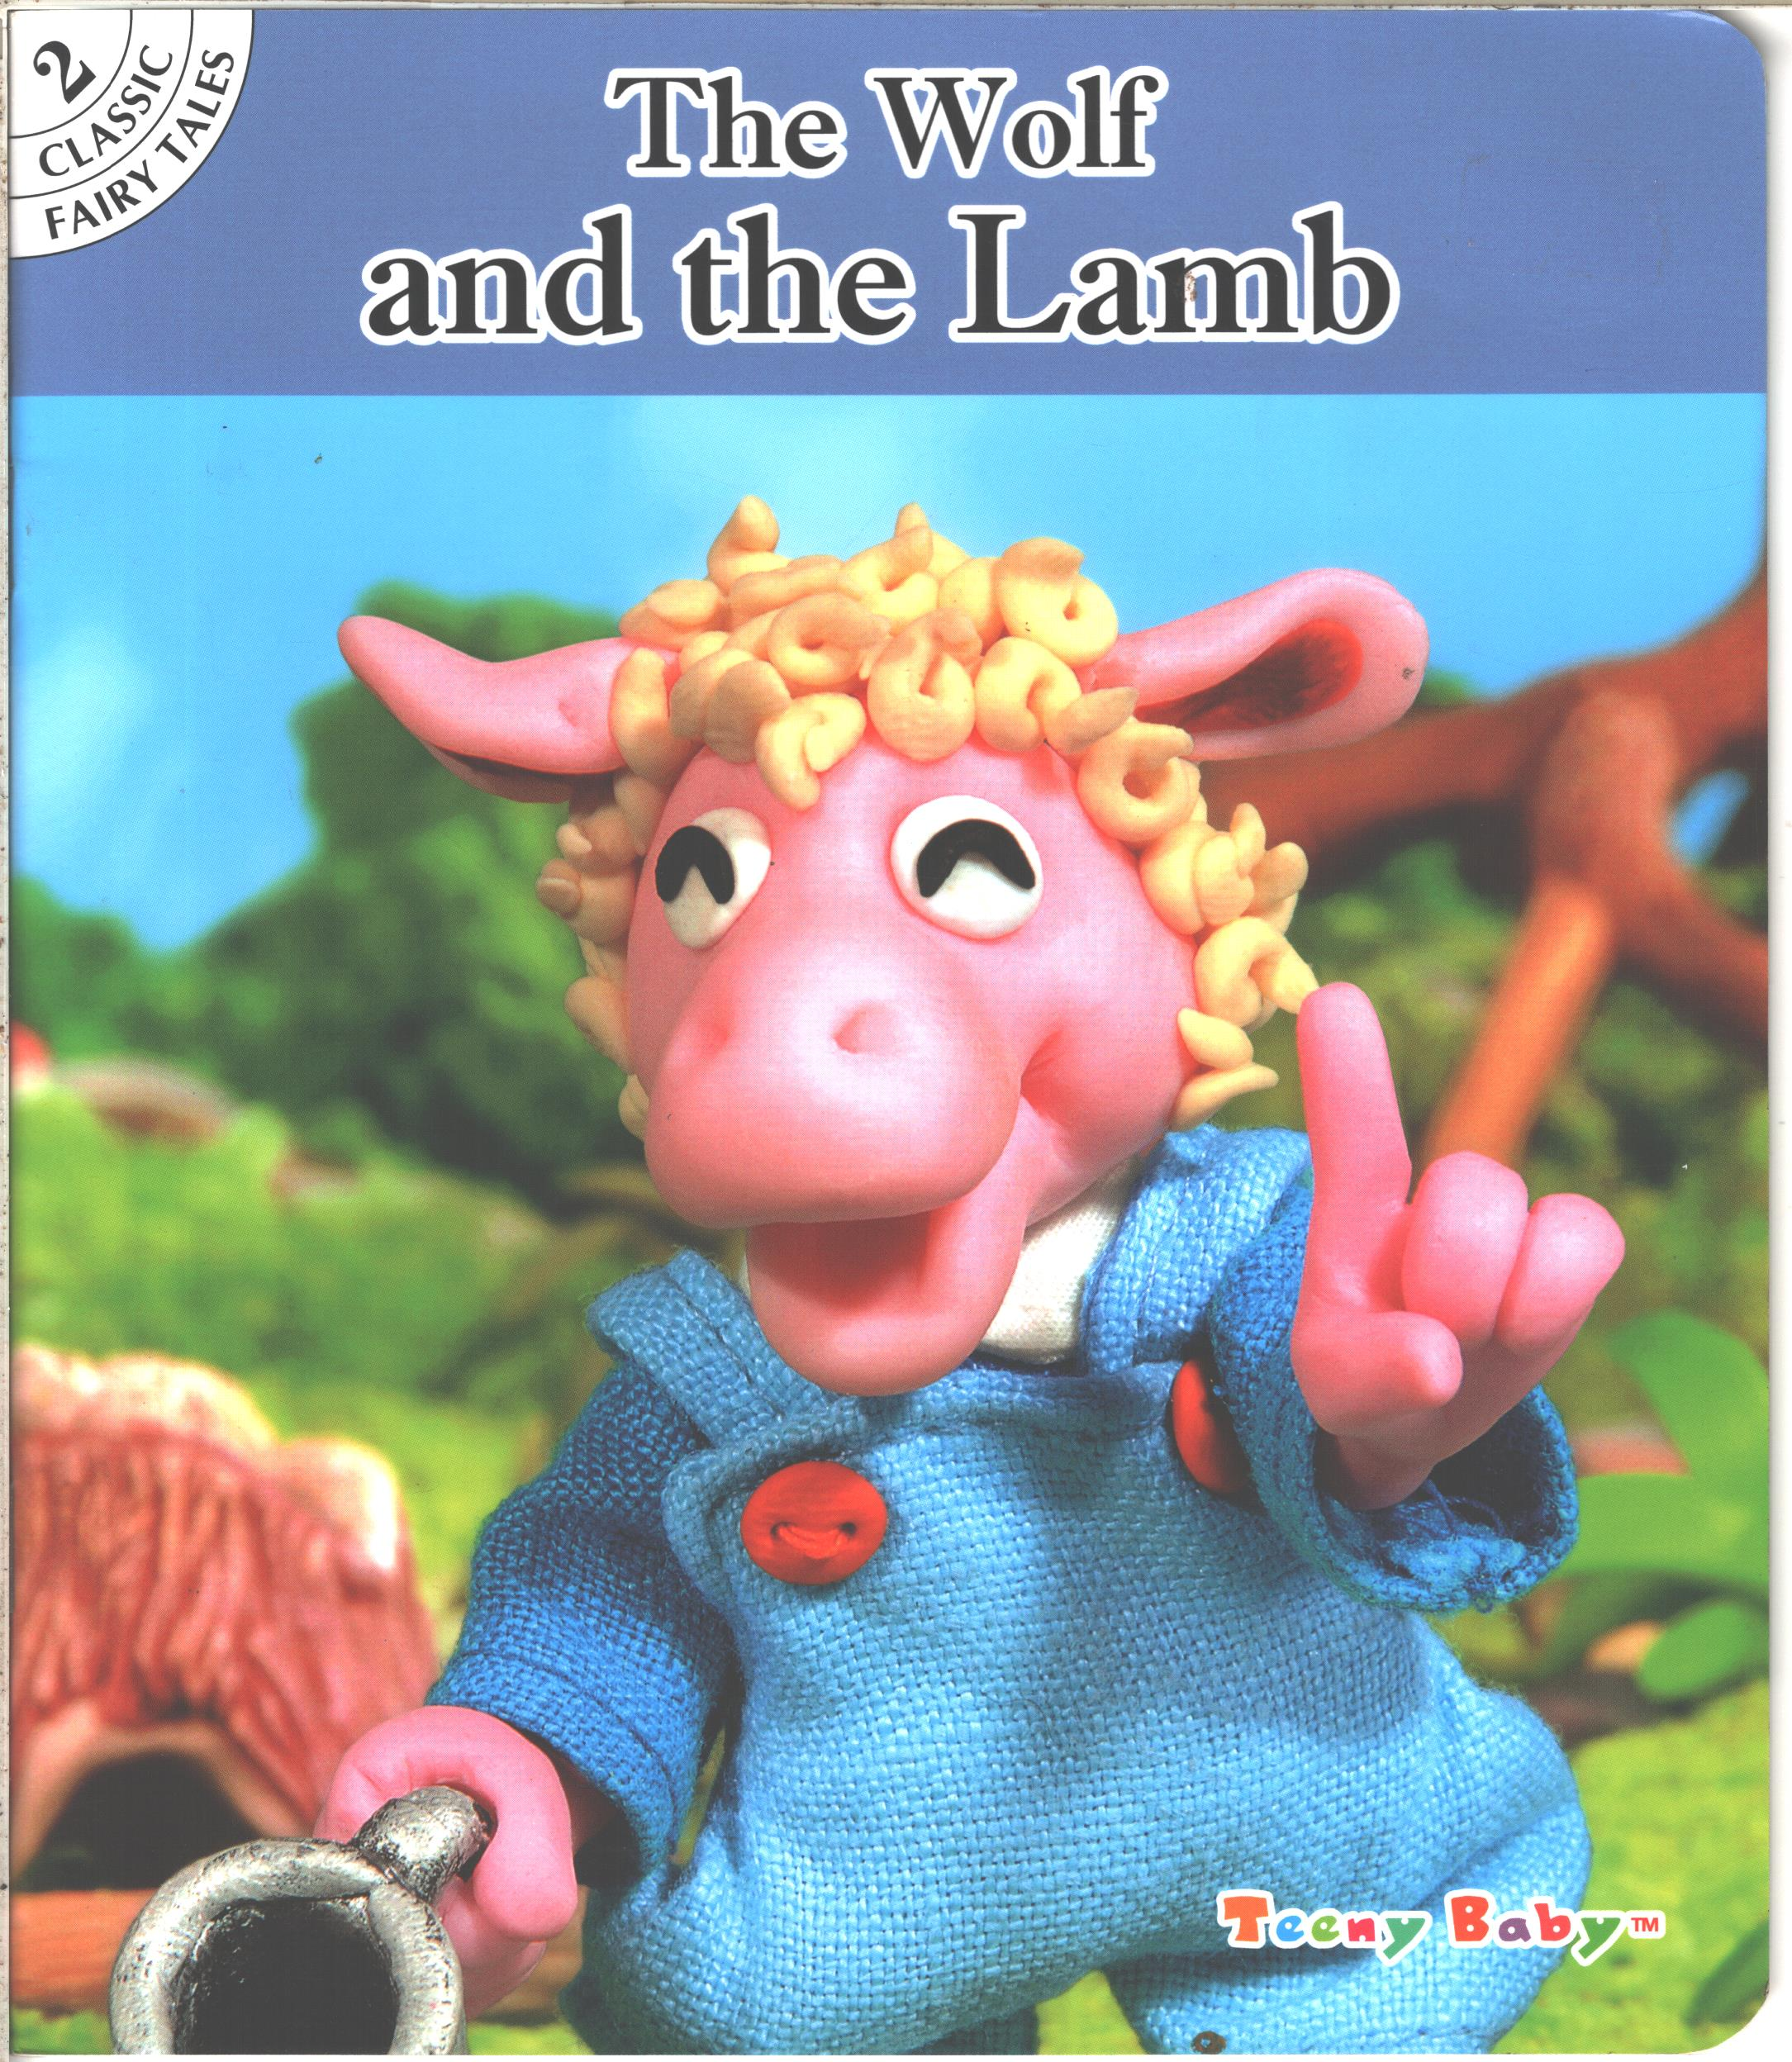 The Wolf and the Lamb (Classic fairy tales)